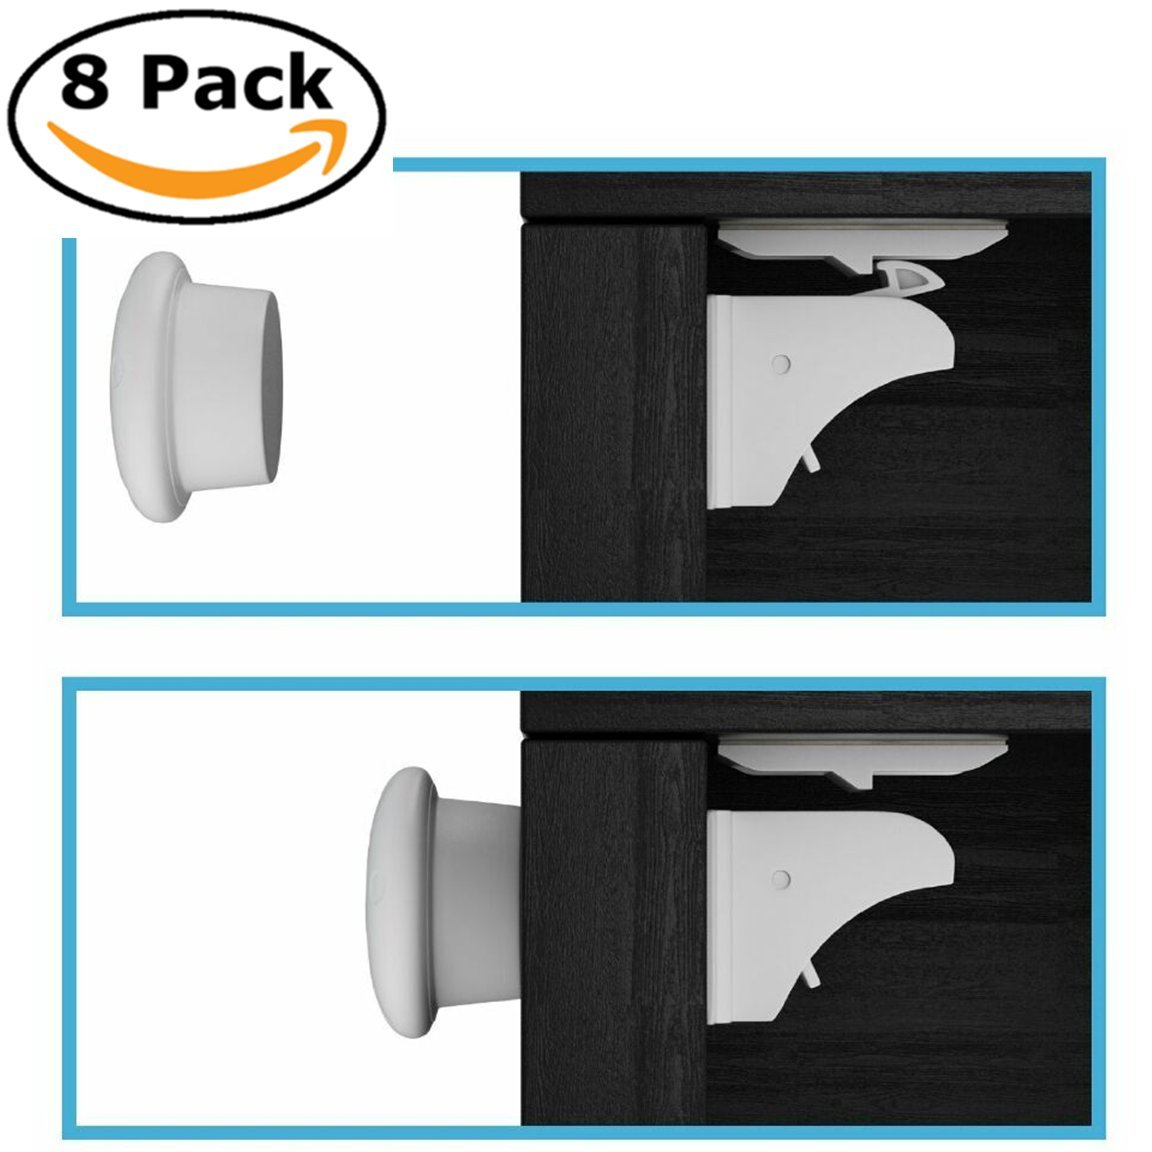 Amazon.com : EliteBaby Magnetic Cabinet Locks   No Tools Or Drilling  Required! 8 Locks And 2 Keys : Baby